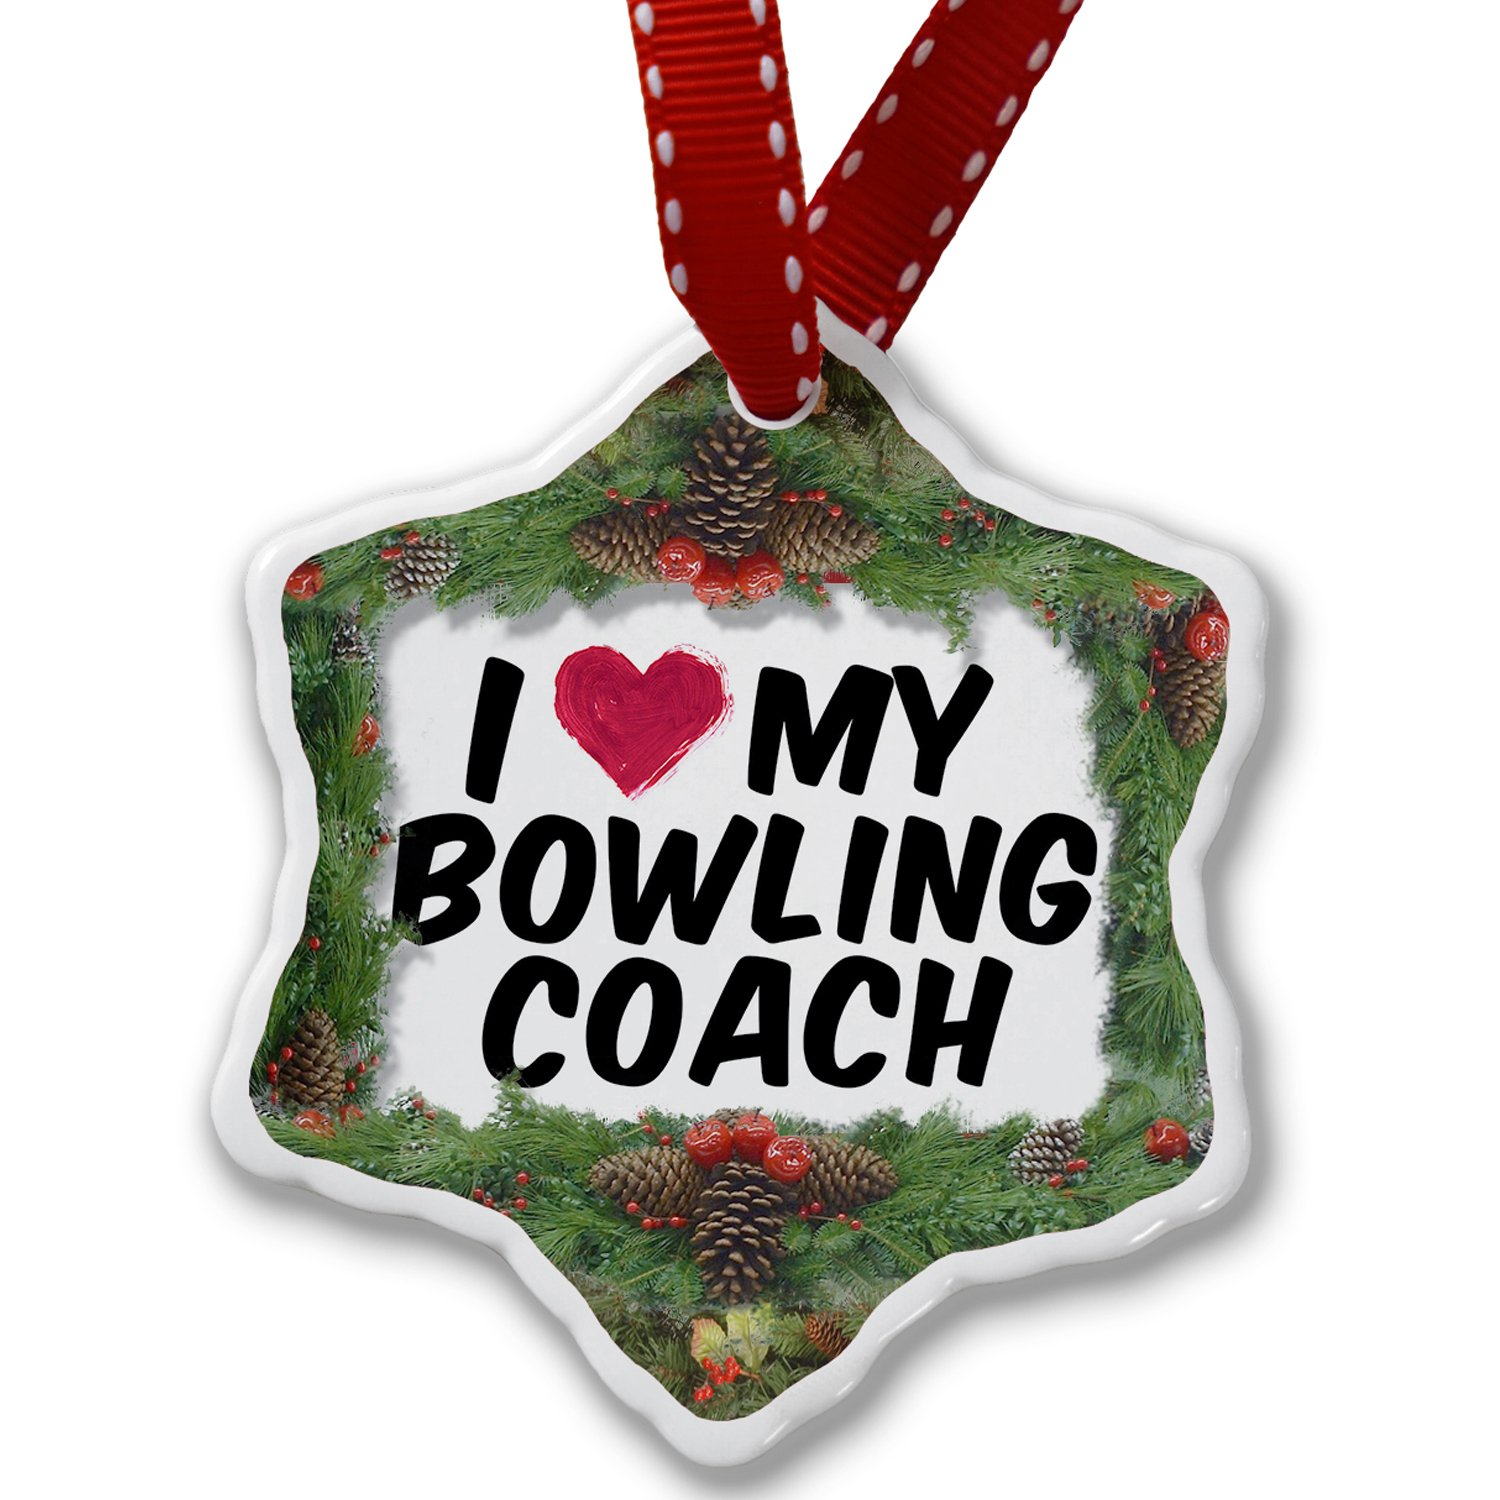 NEONBLOND Christmas Ornament I Heart Love My Bowling Coach ornament-01-133521